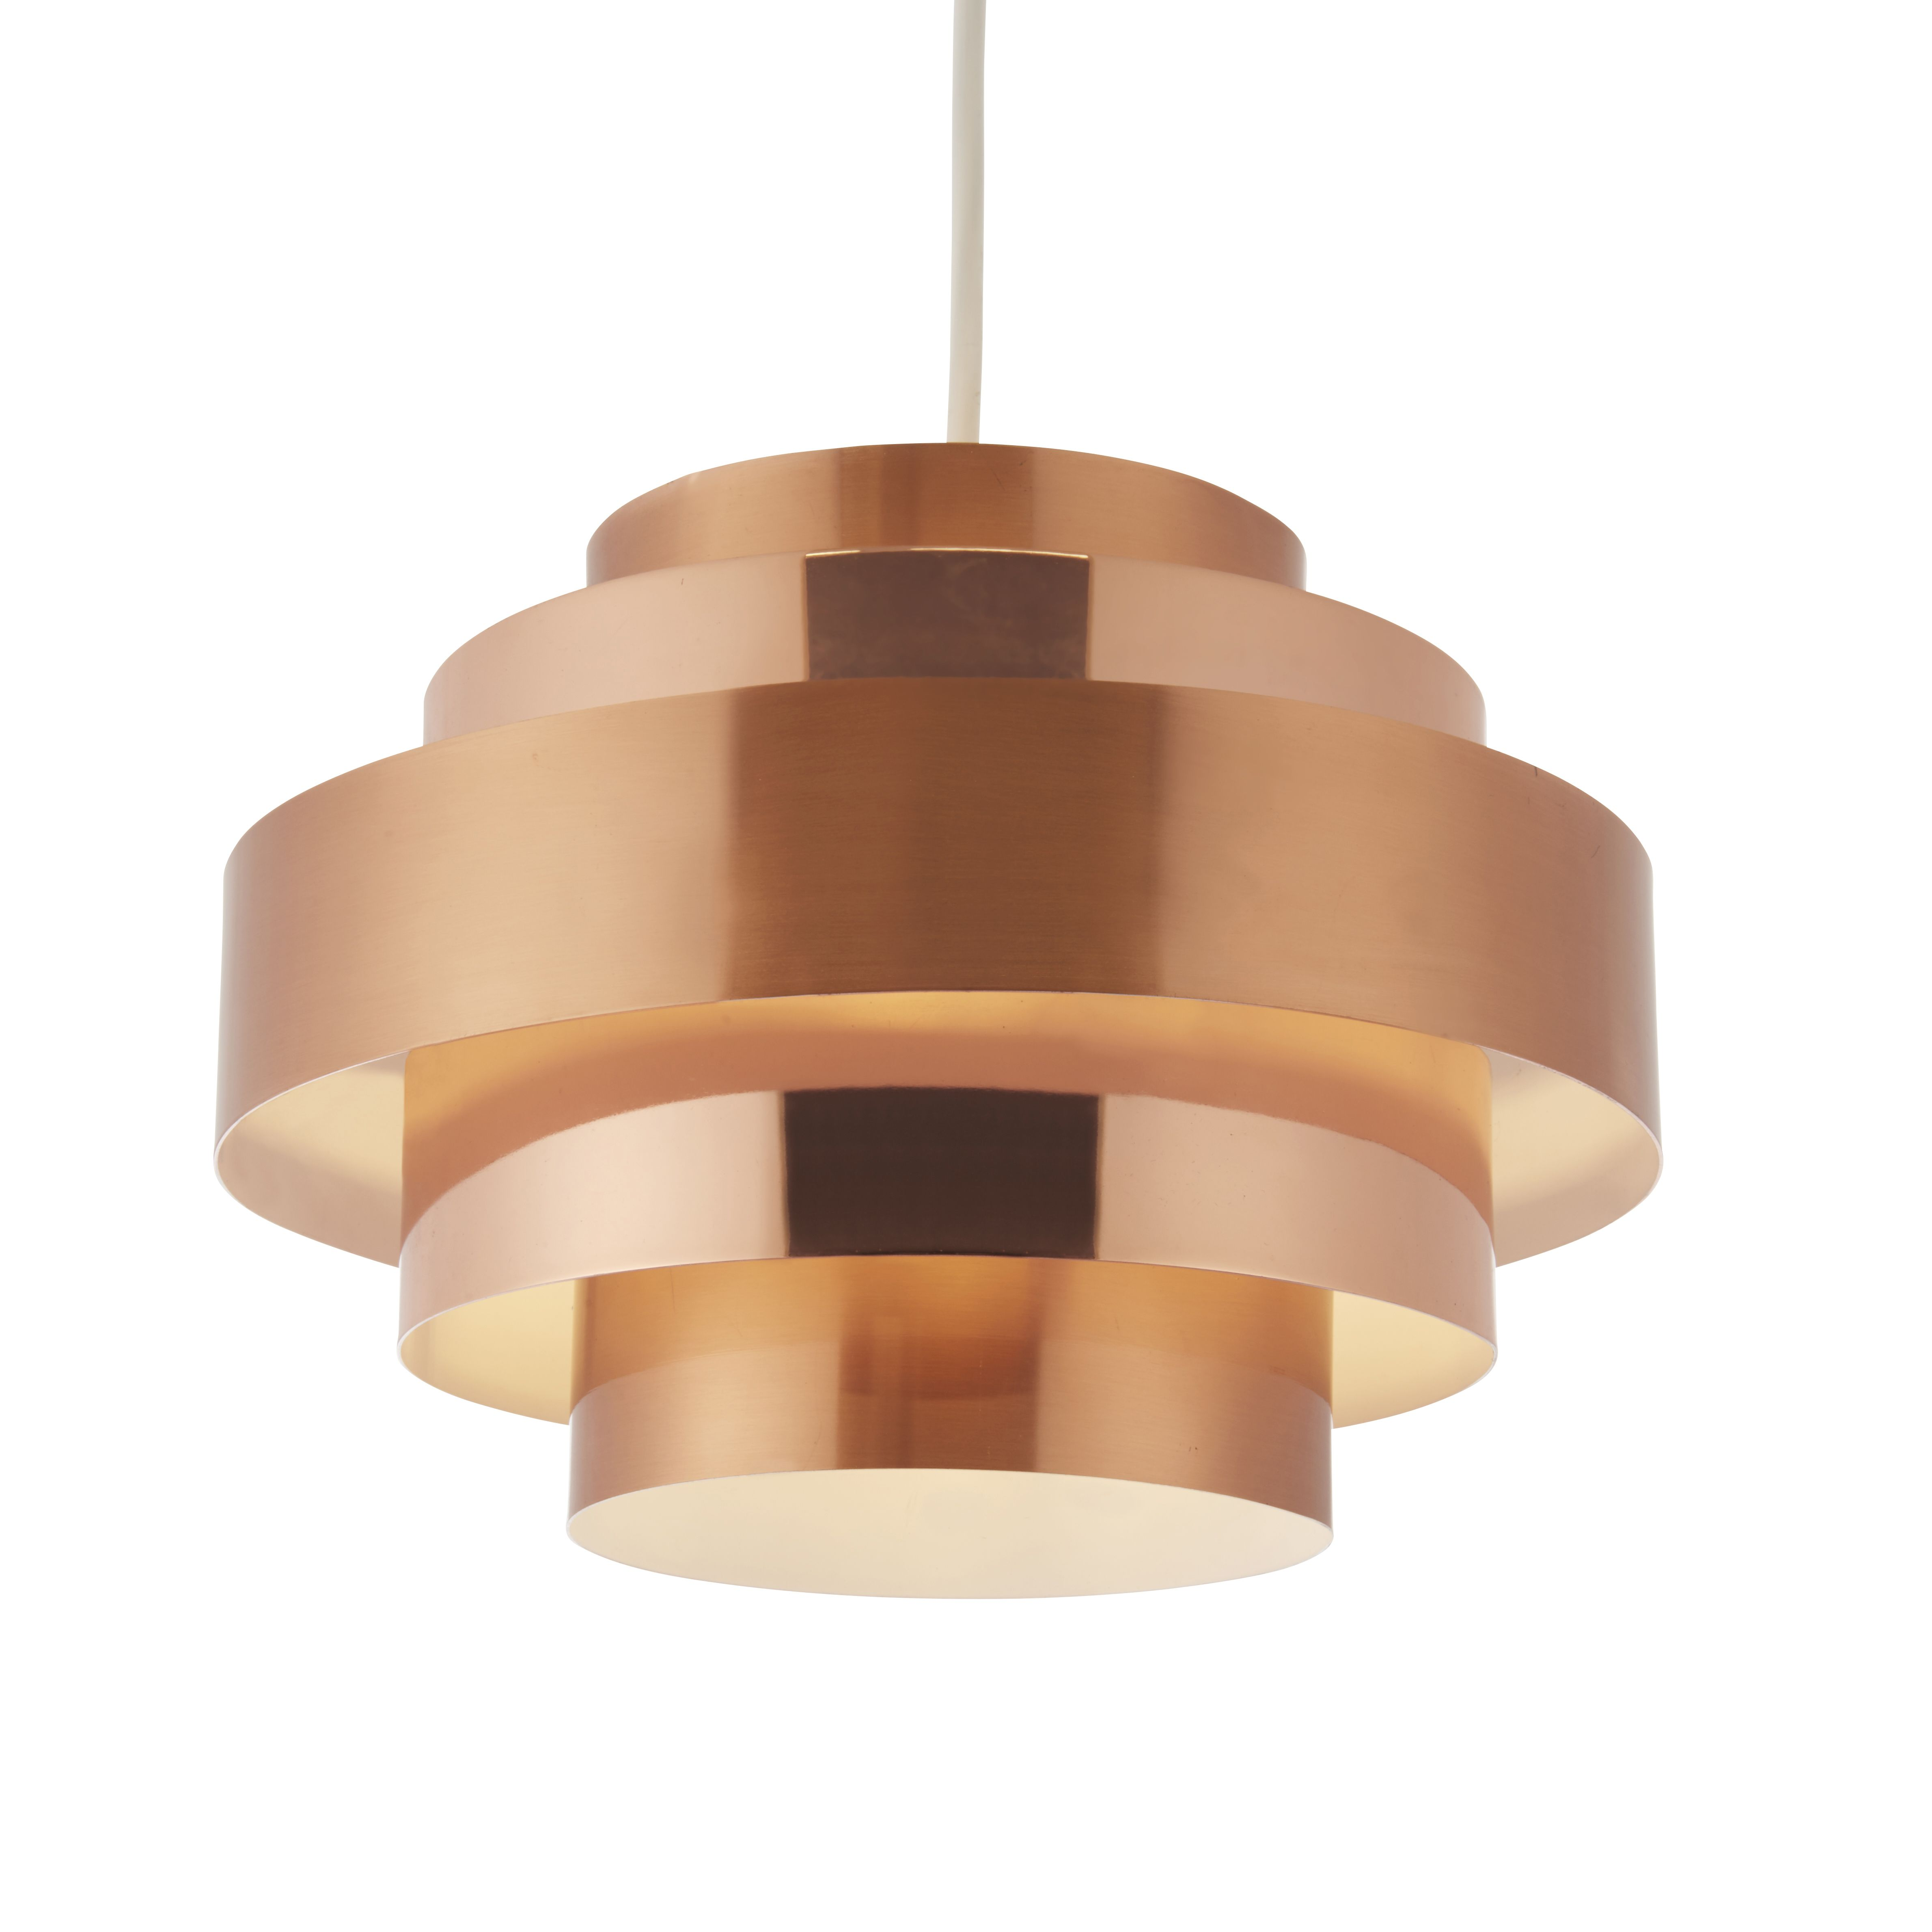 Rizo Copper Brushed Copper Effect Lamp Shade | Departments | DIY at B&Q